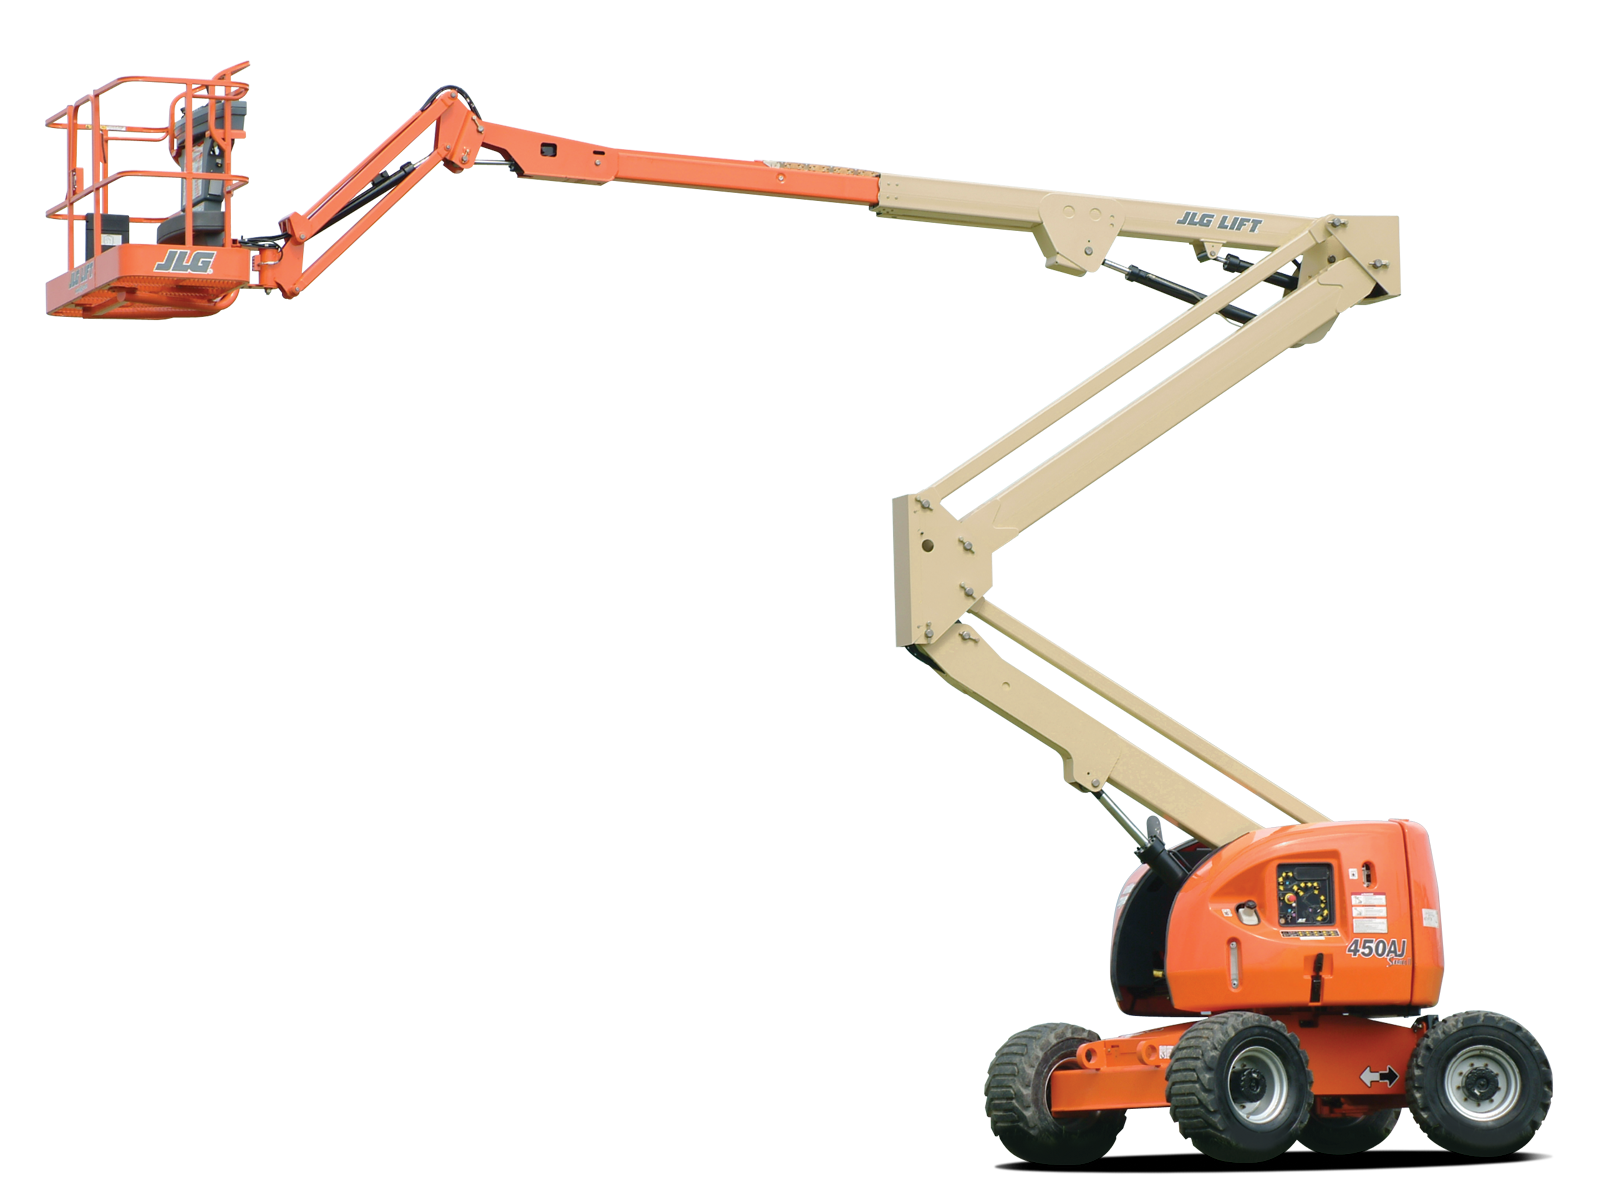 JLG 450AJ | Articulated Manlifts on Rent | WESTERN INDIA SKY LIFTER